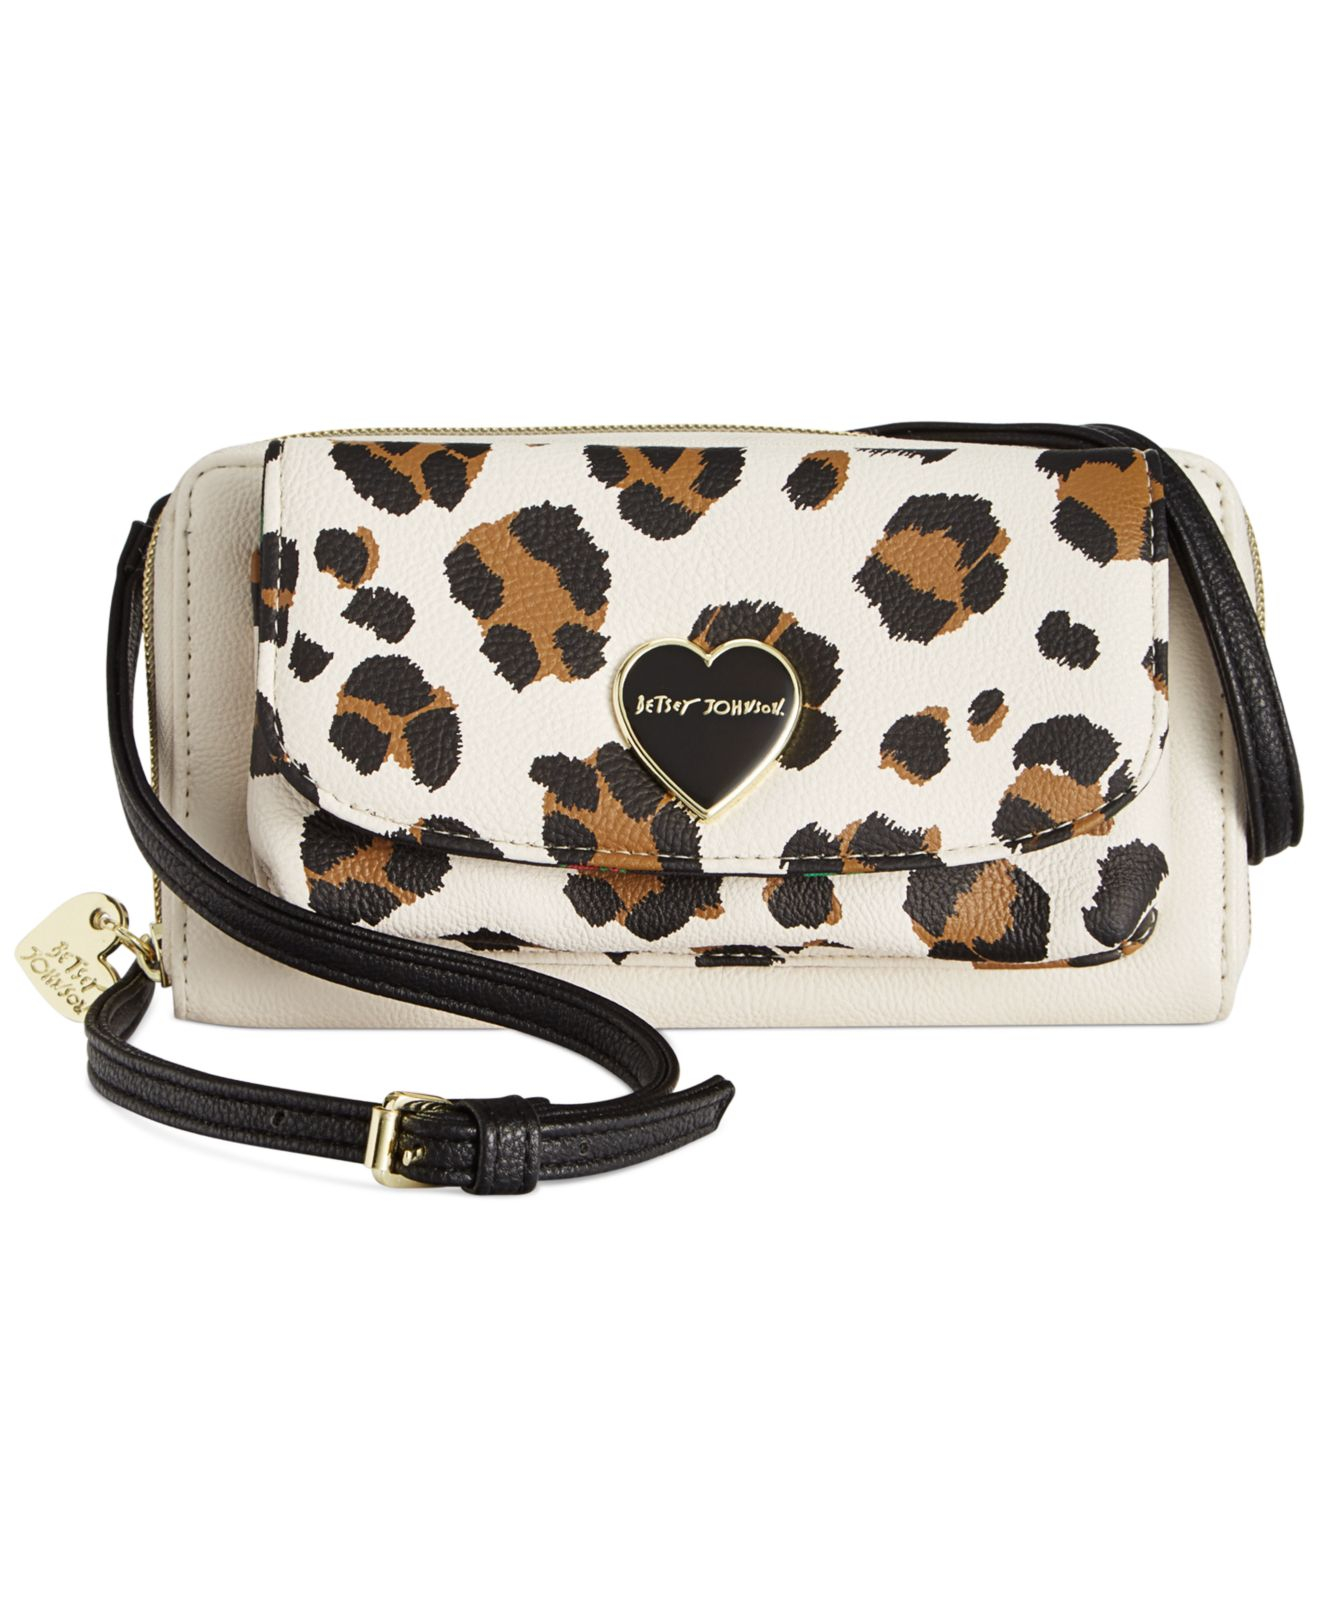 2585042540f0 Lyst - Betsey Johnson Macy's Exclusive Wallet On A String Crossbody